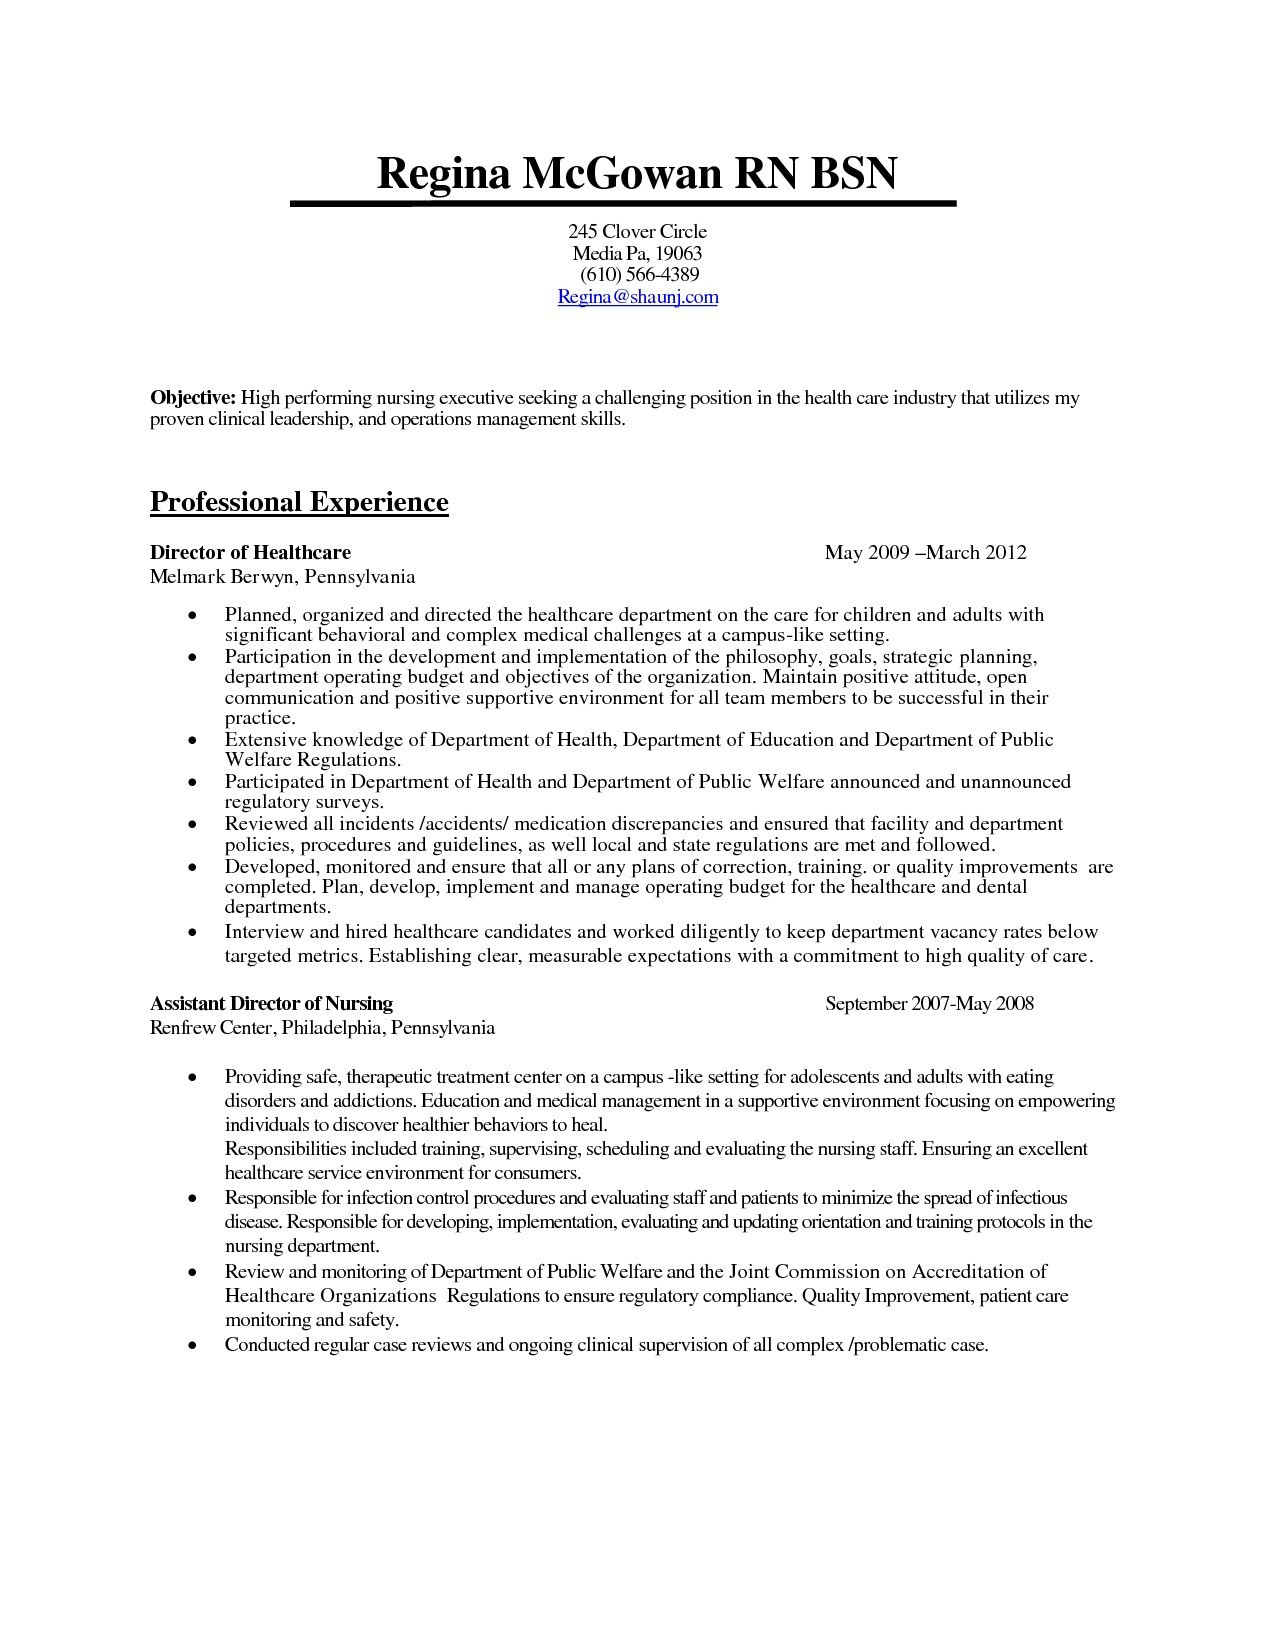 Leadership Skills Resume Phrases - 24 Awesome Example Job Resume